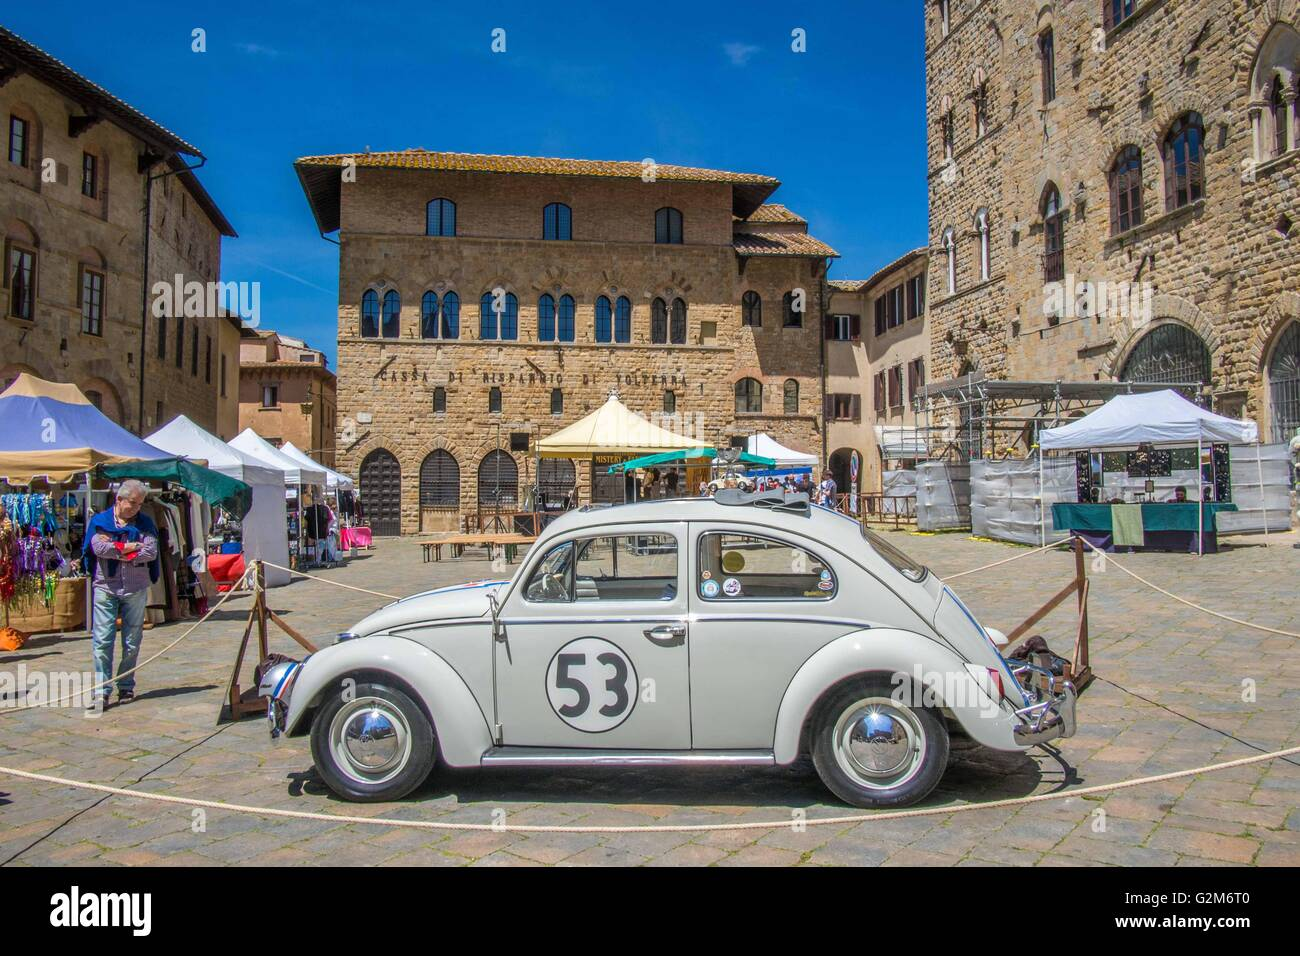 VW Beetle car in Piazza dei Priori, Volterra, a walled mountaintop town in Pisa province in the Tuscany region, - Stock Image